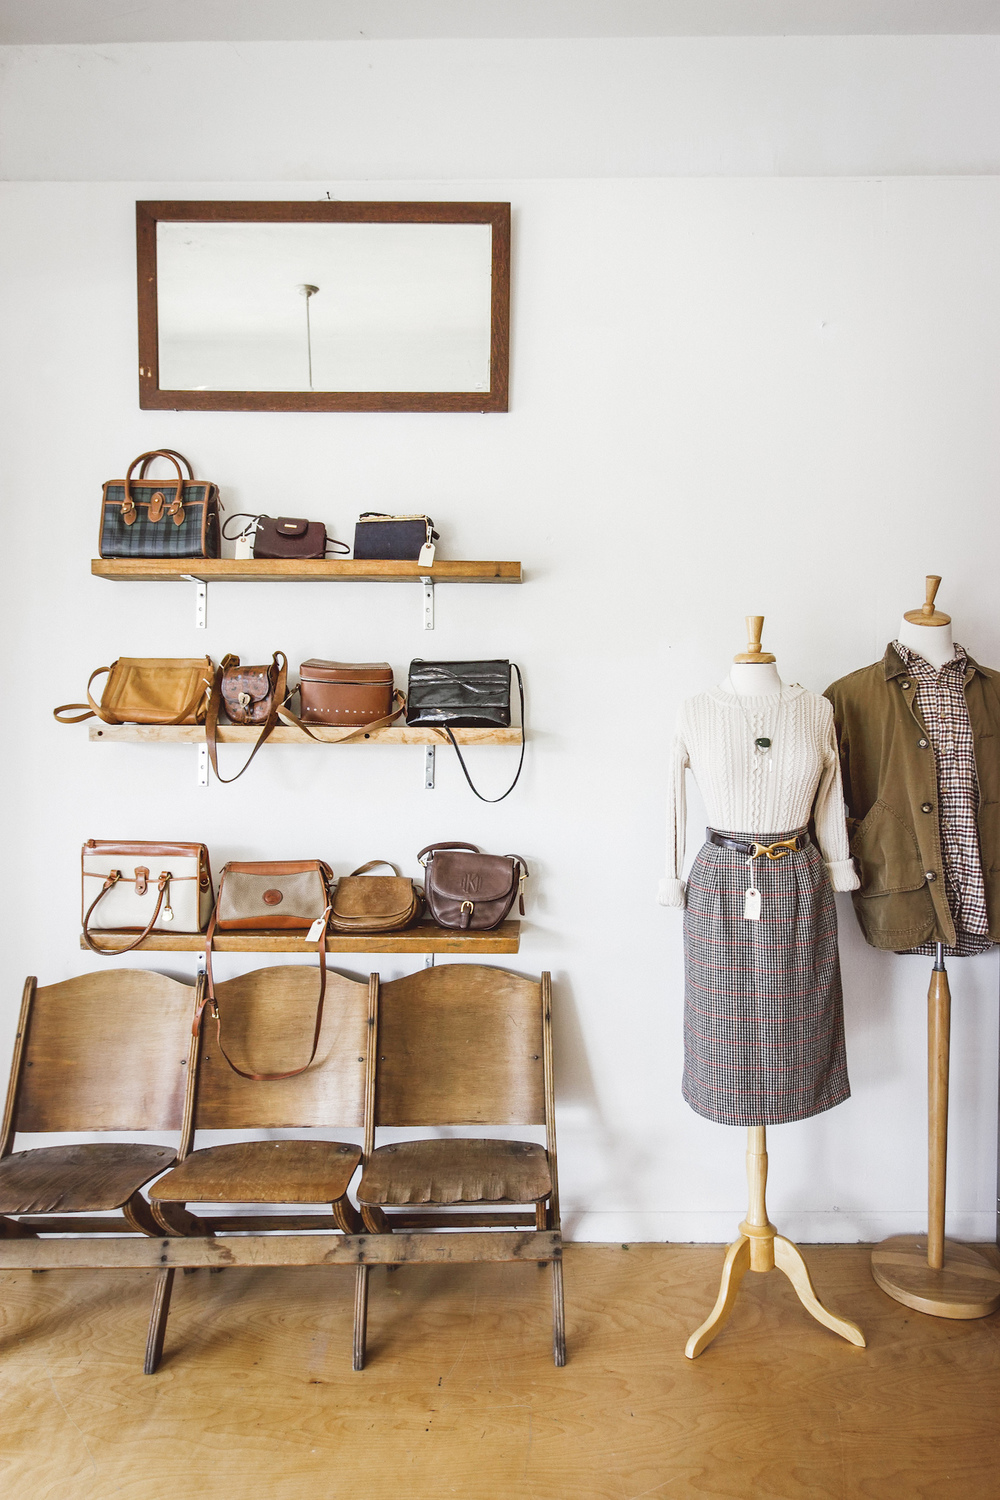 Home & Closet | Local Shopping Guide to Lincoln, NE